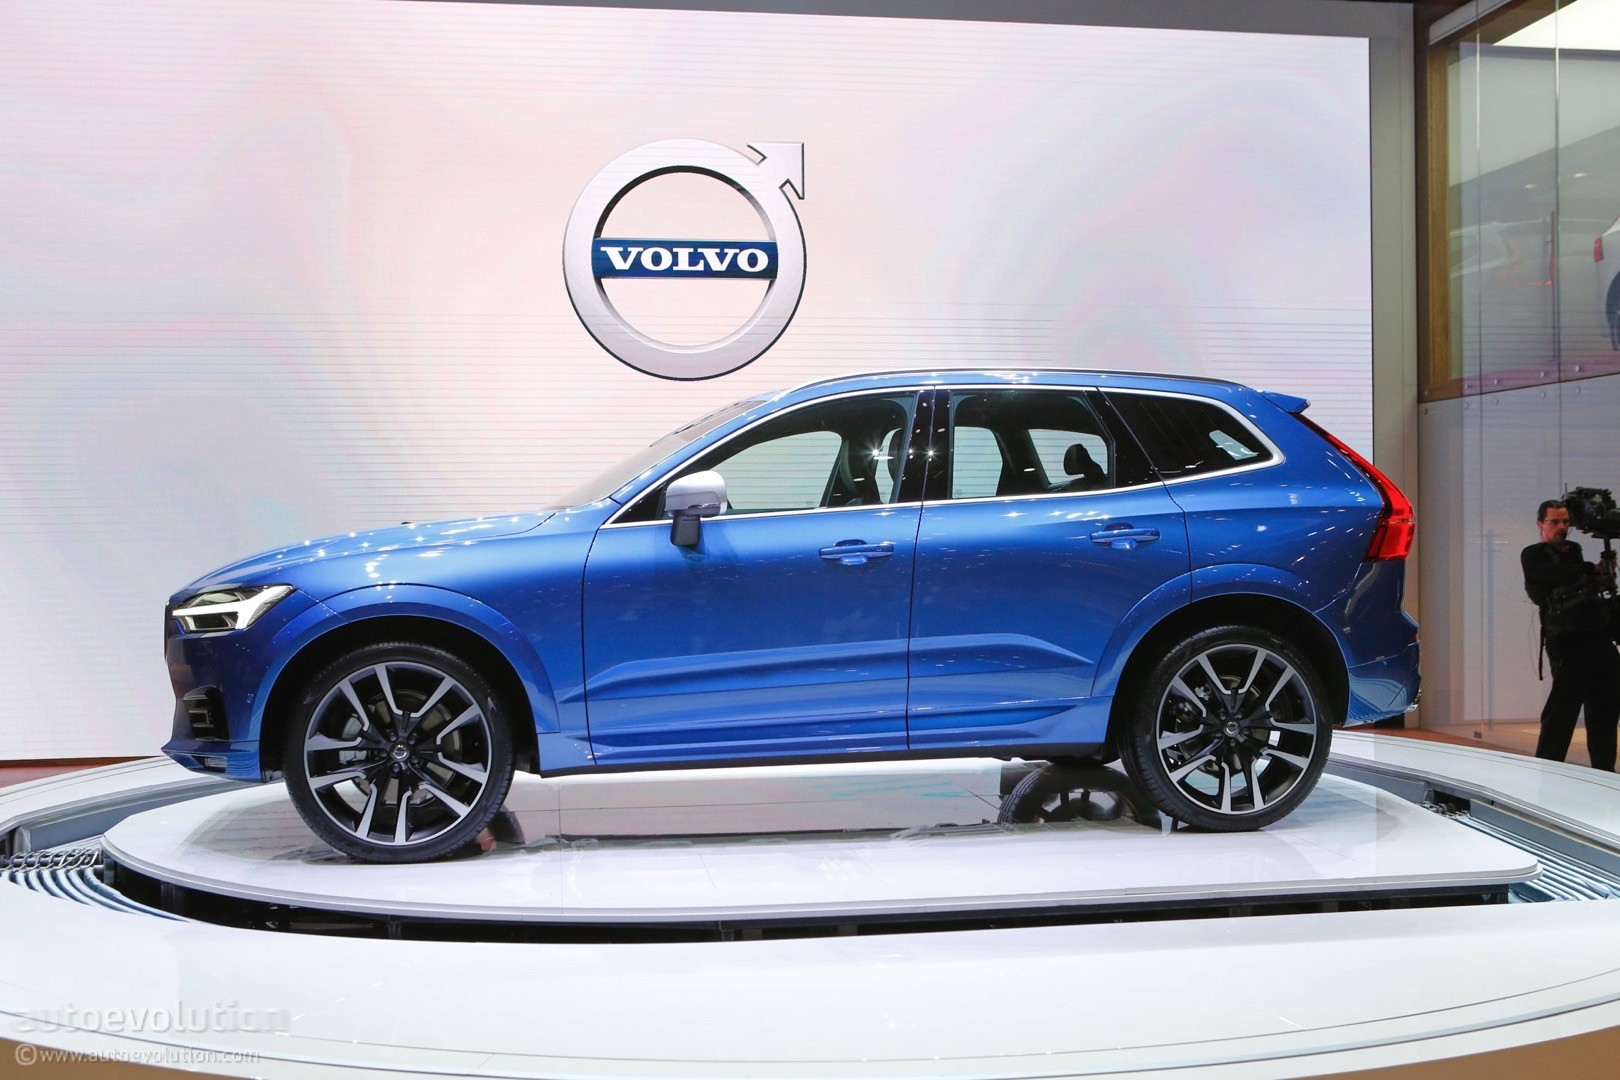 Volvo 20 Series Incoming, XC20 Crossover Is Most Likely - autoevolution